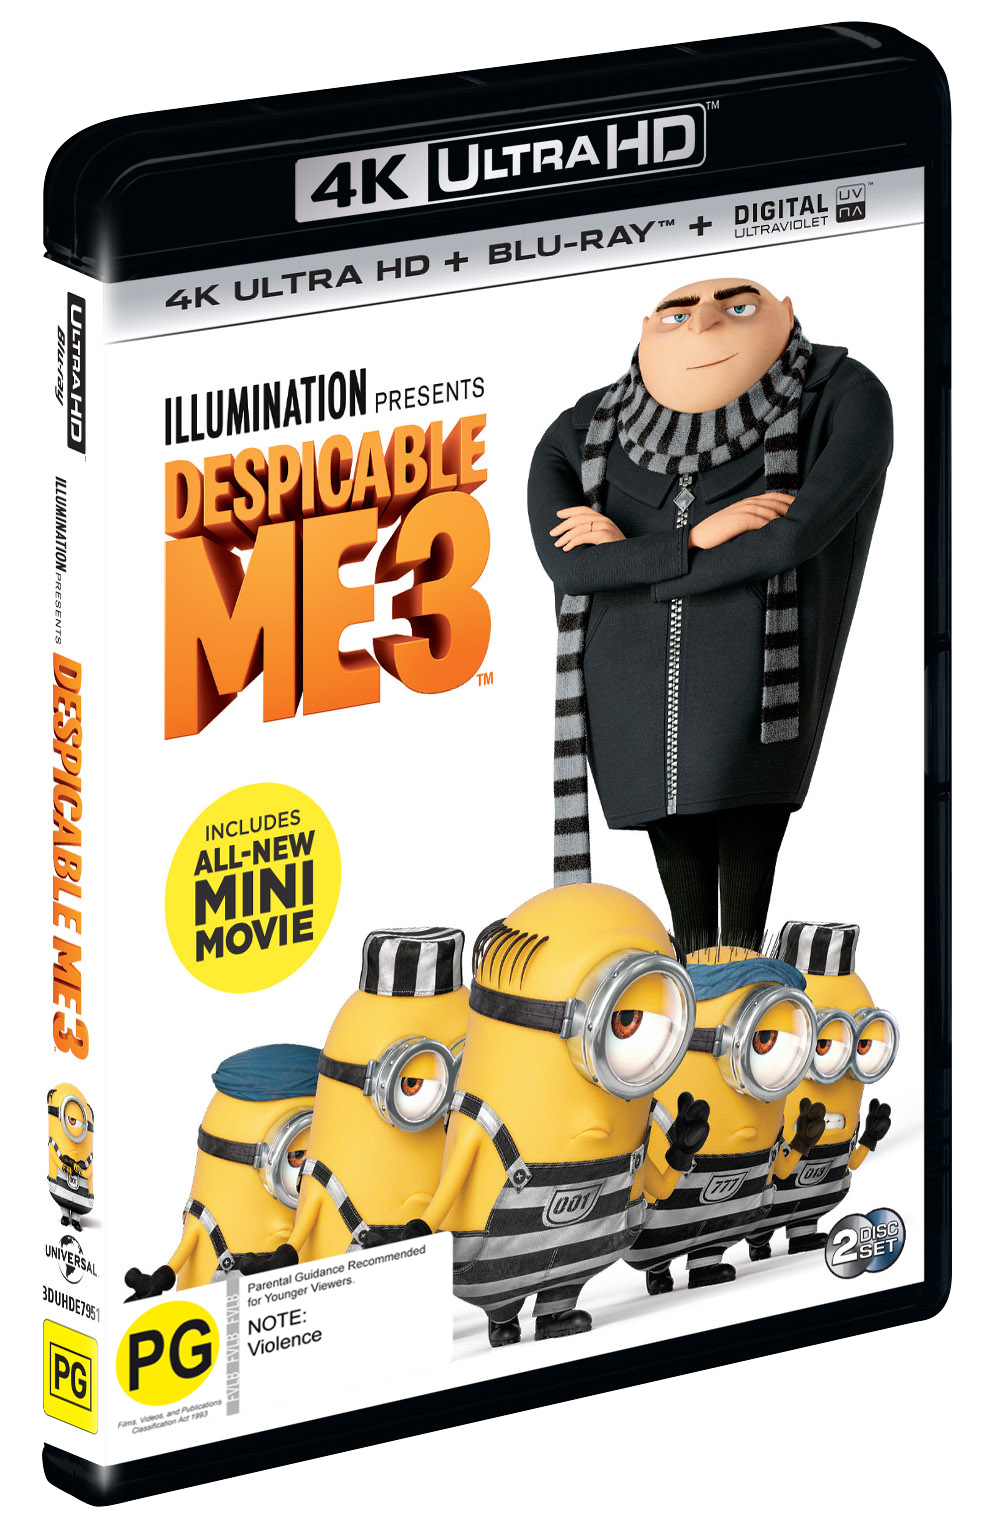 Despicable Me 3 on Blu-ray, UHD Blu-ray image